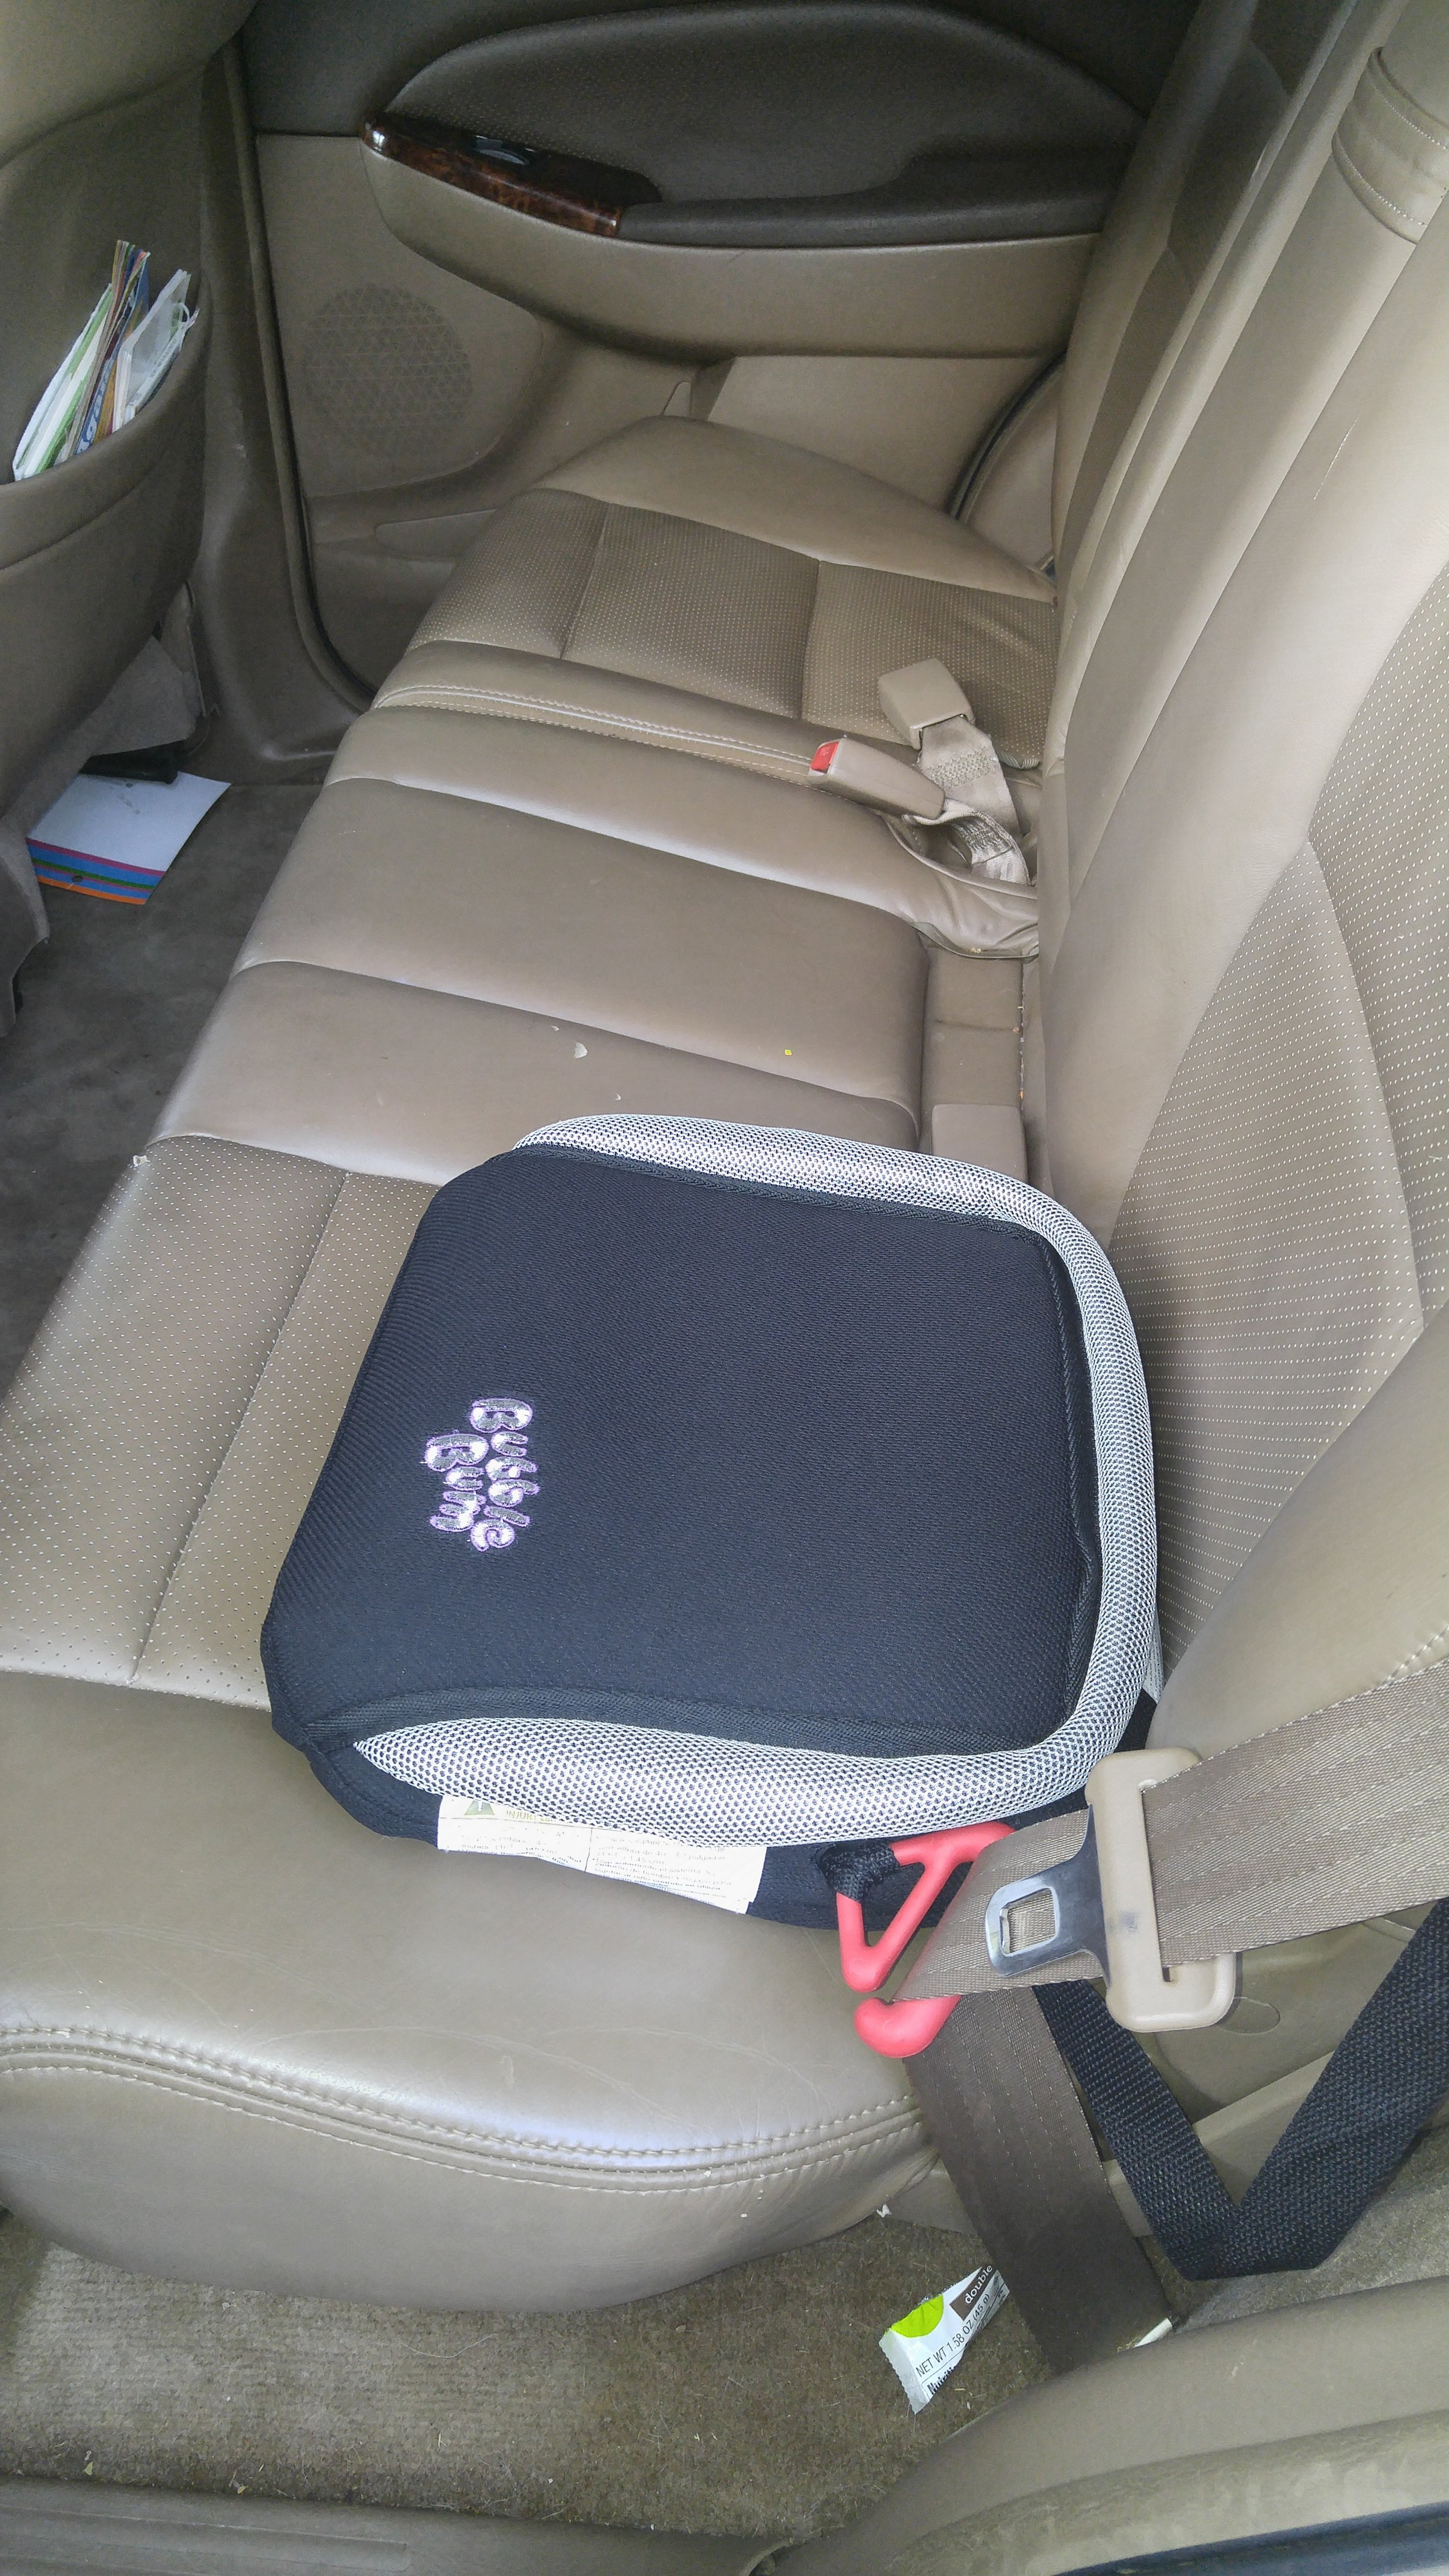 The Bubblebum in my car. Works great and the kids love it.